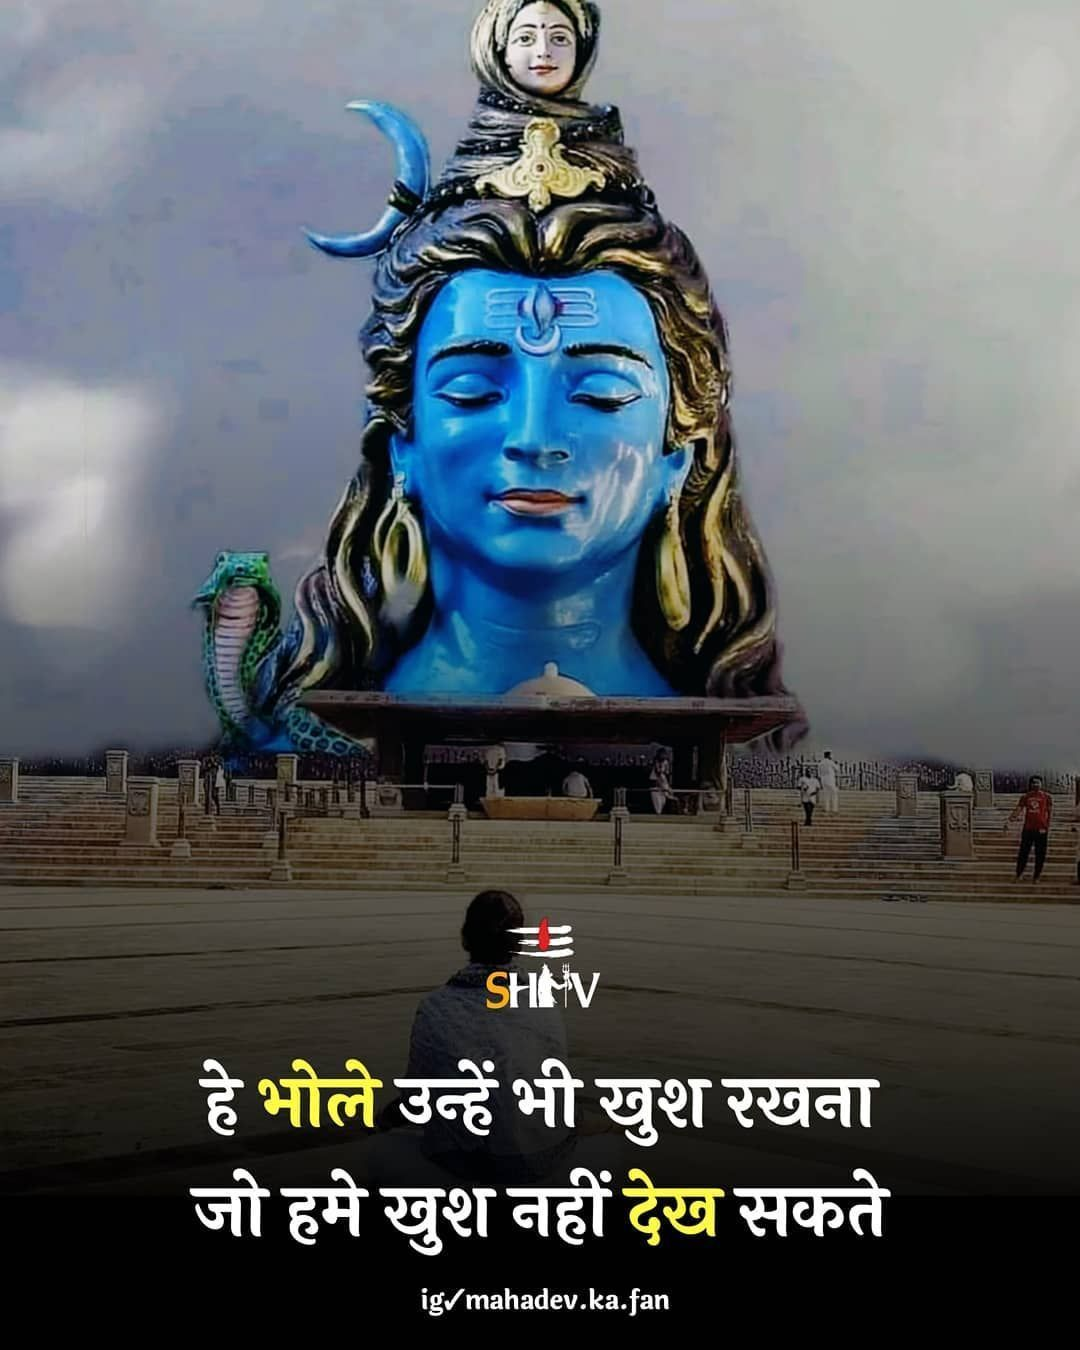 Pin on mahadev hd wallpaper in 2020 | Lord shiva hd ...